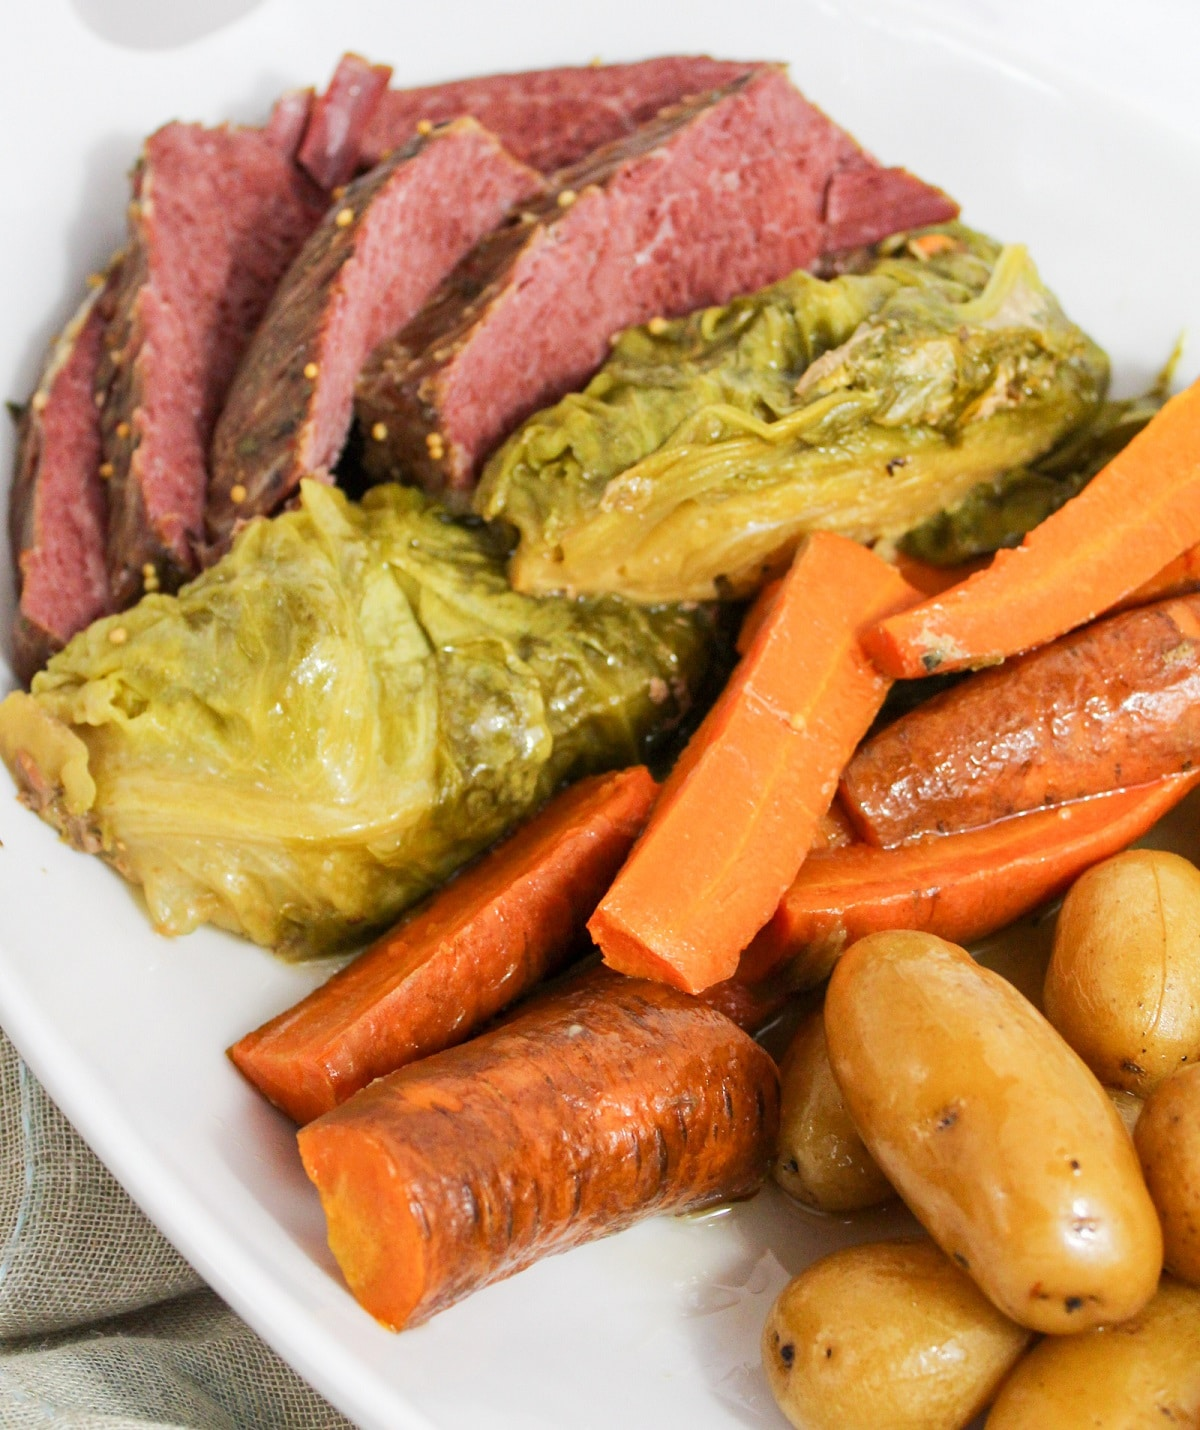 plated corned beef, cabbage, carrots, and potatoes